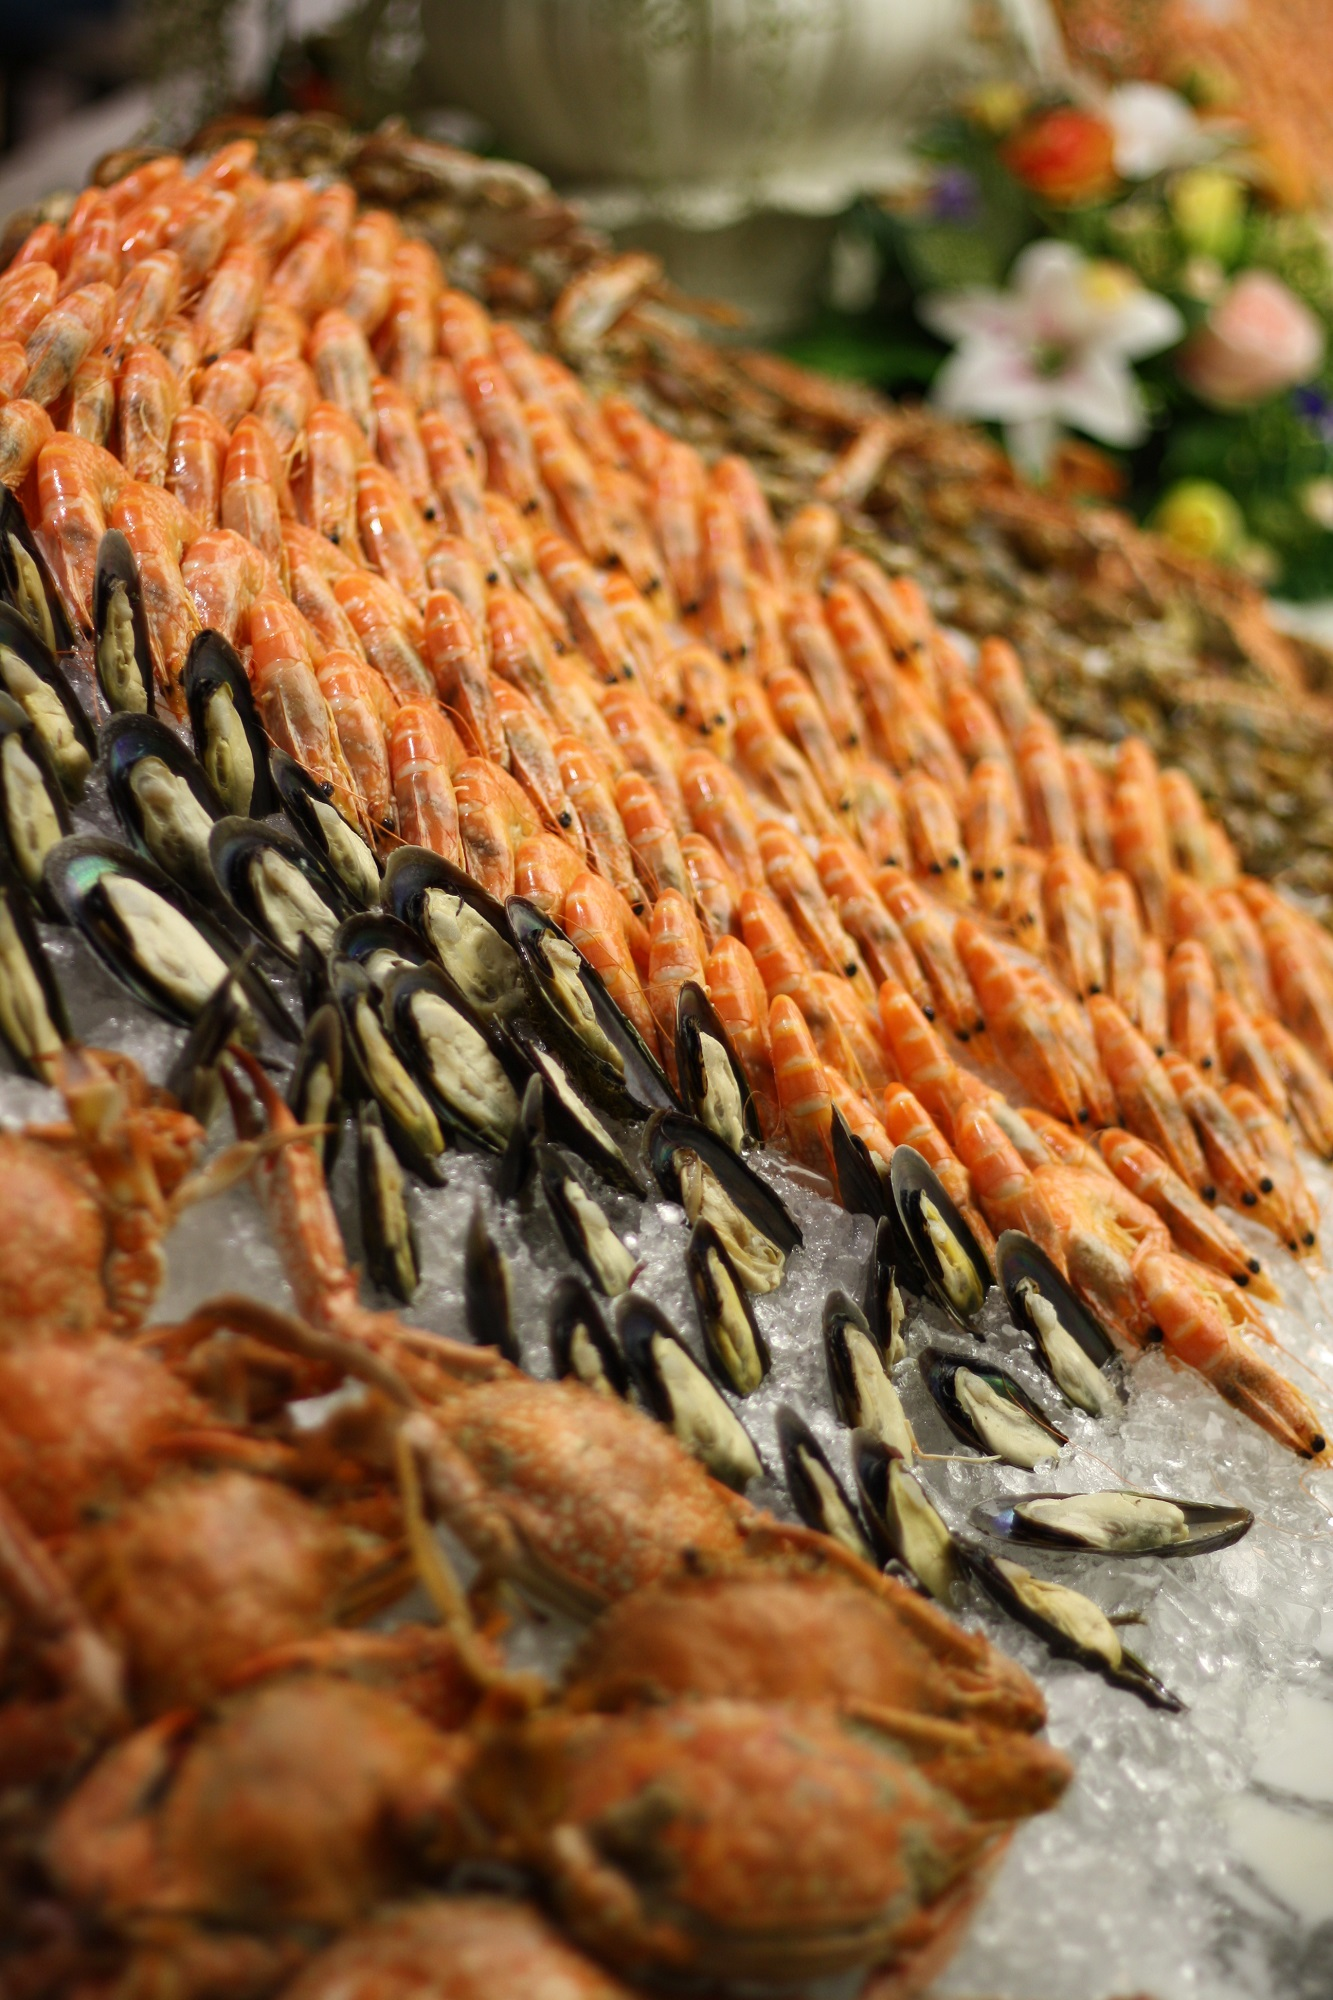 a-one-seafood-buffet-dinner-pattaya-2